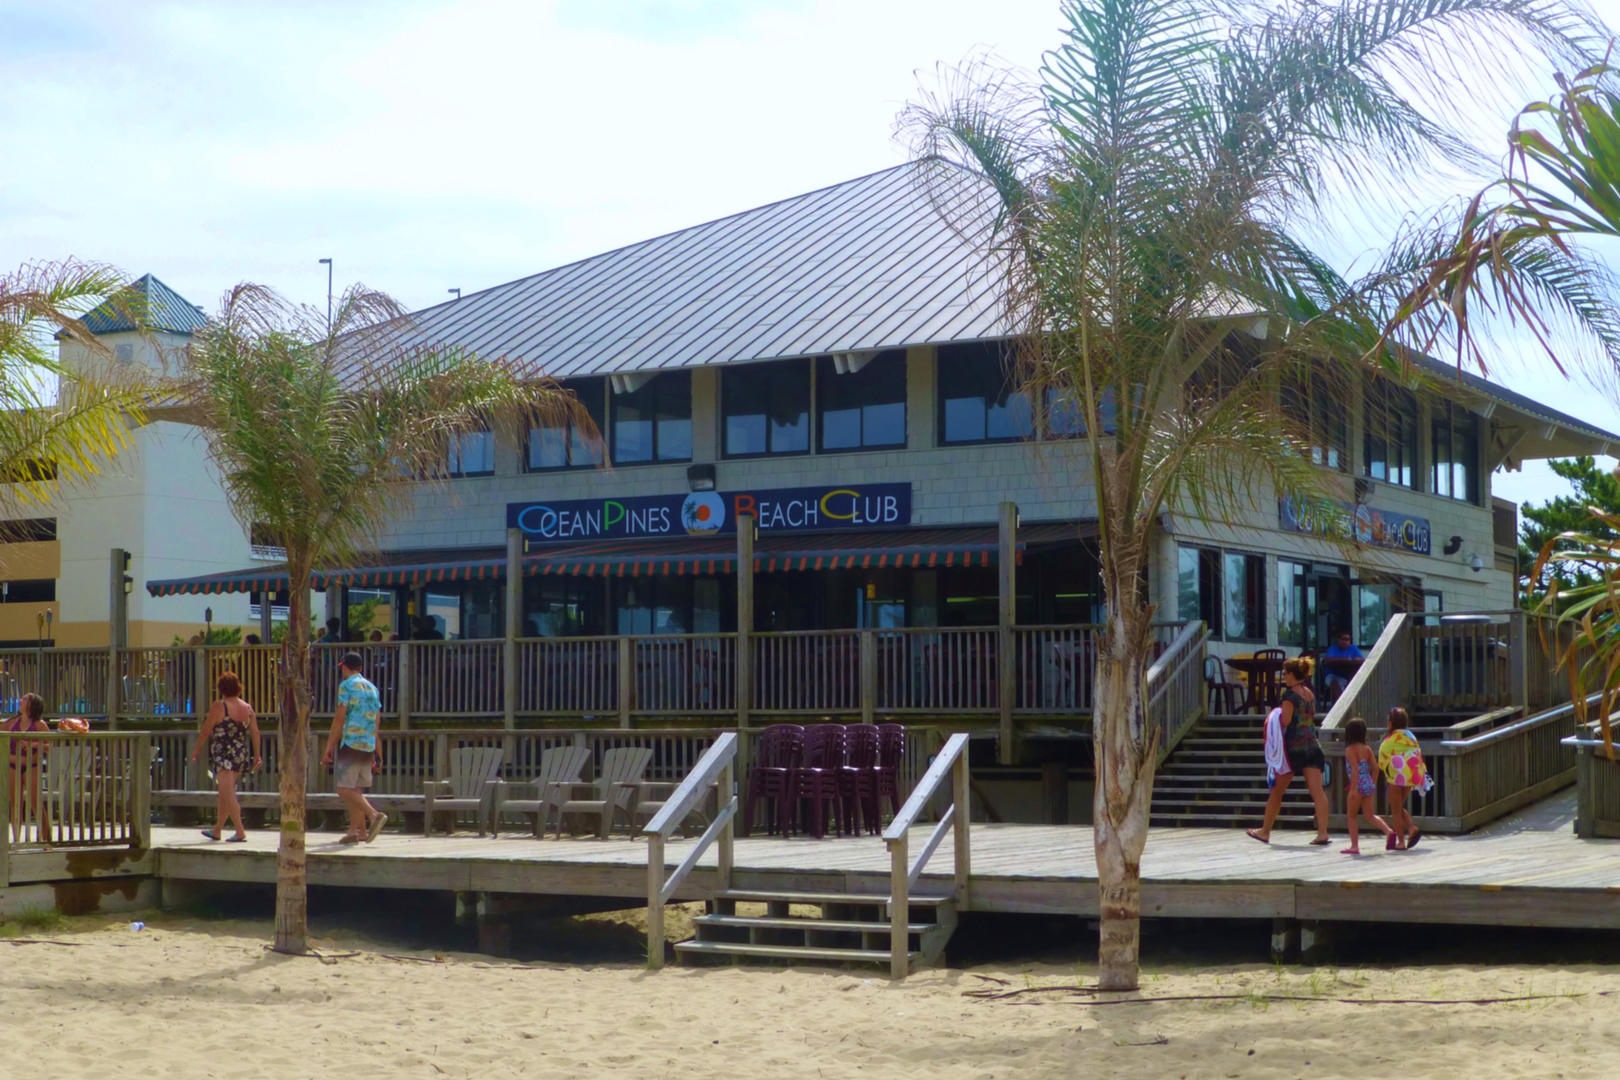 Ocean Pines Beach Club (49th St. in Ocean City)